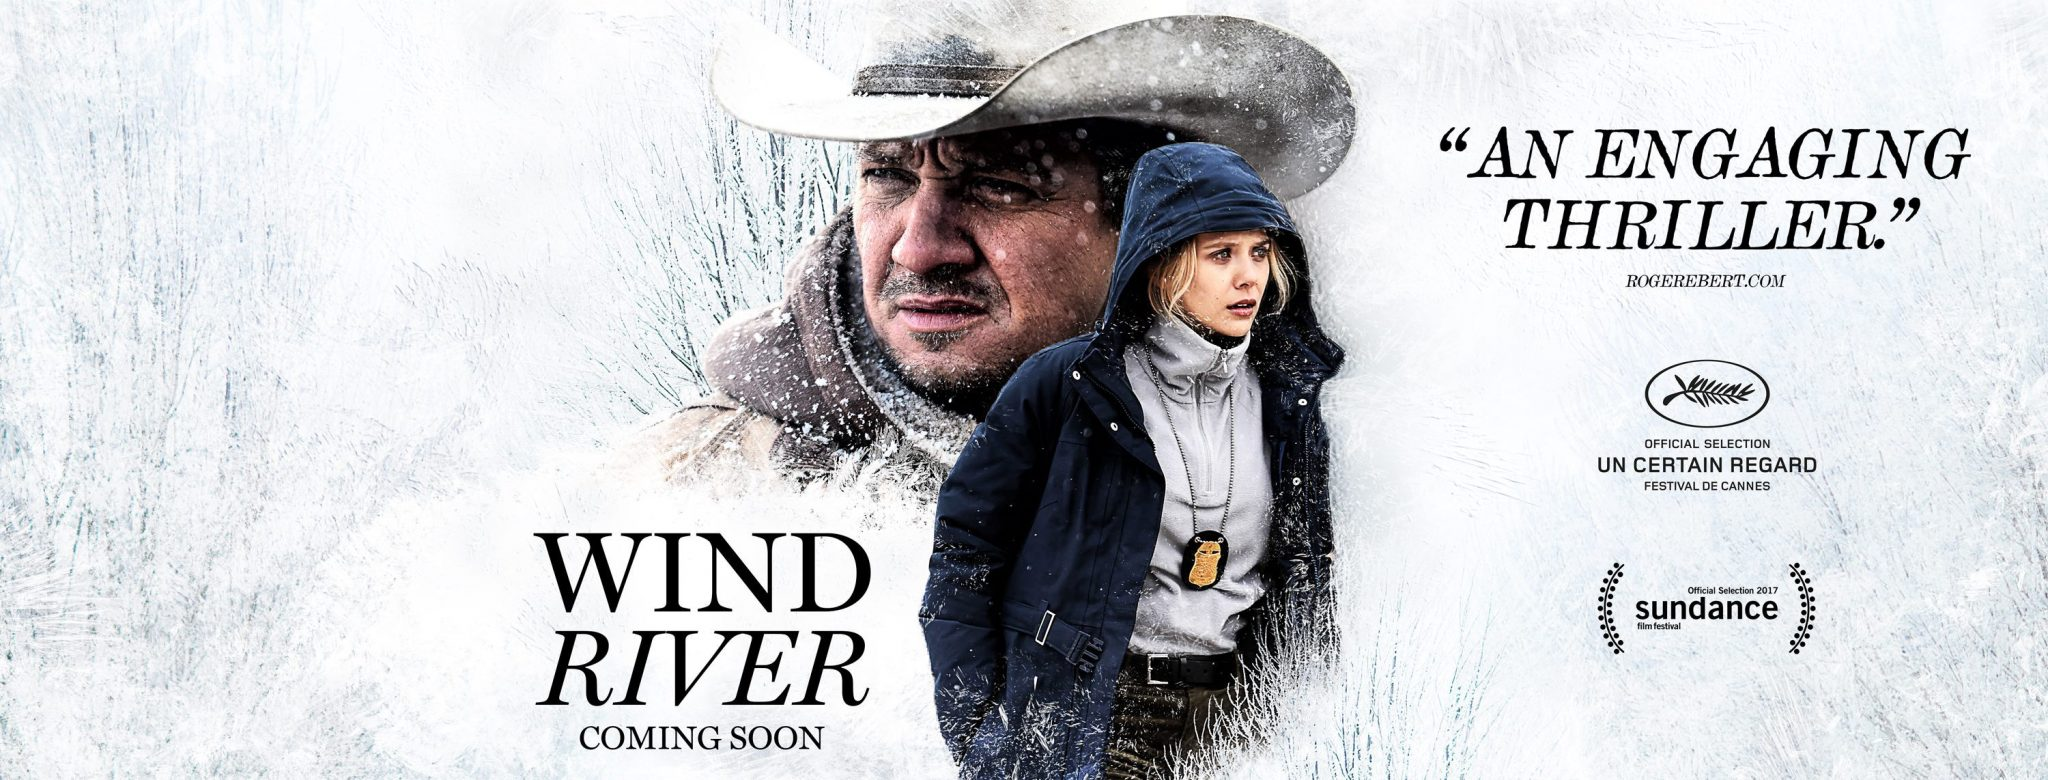 wind river ویند ریور